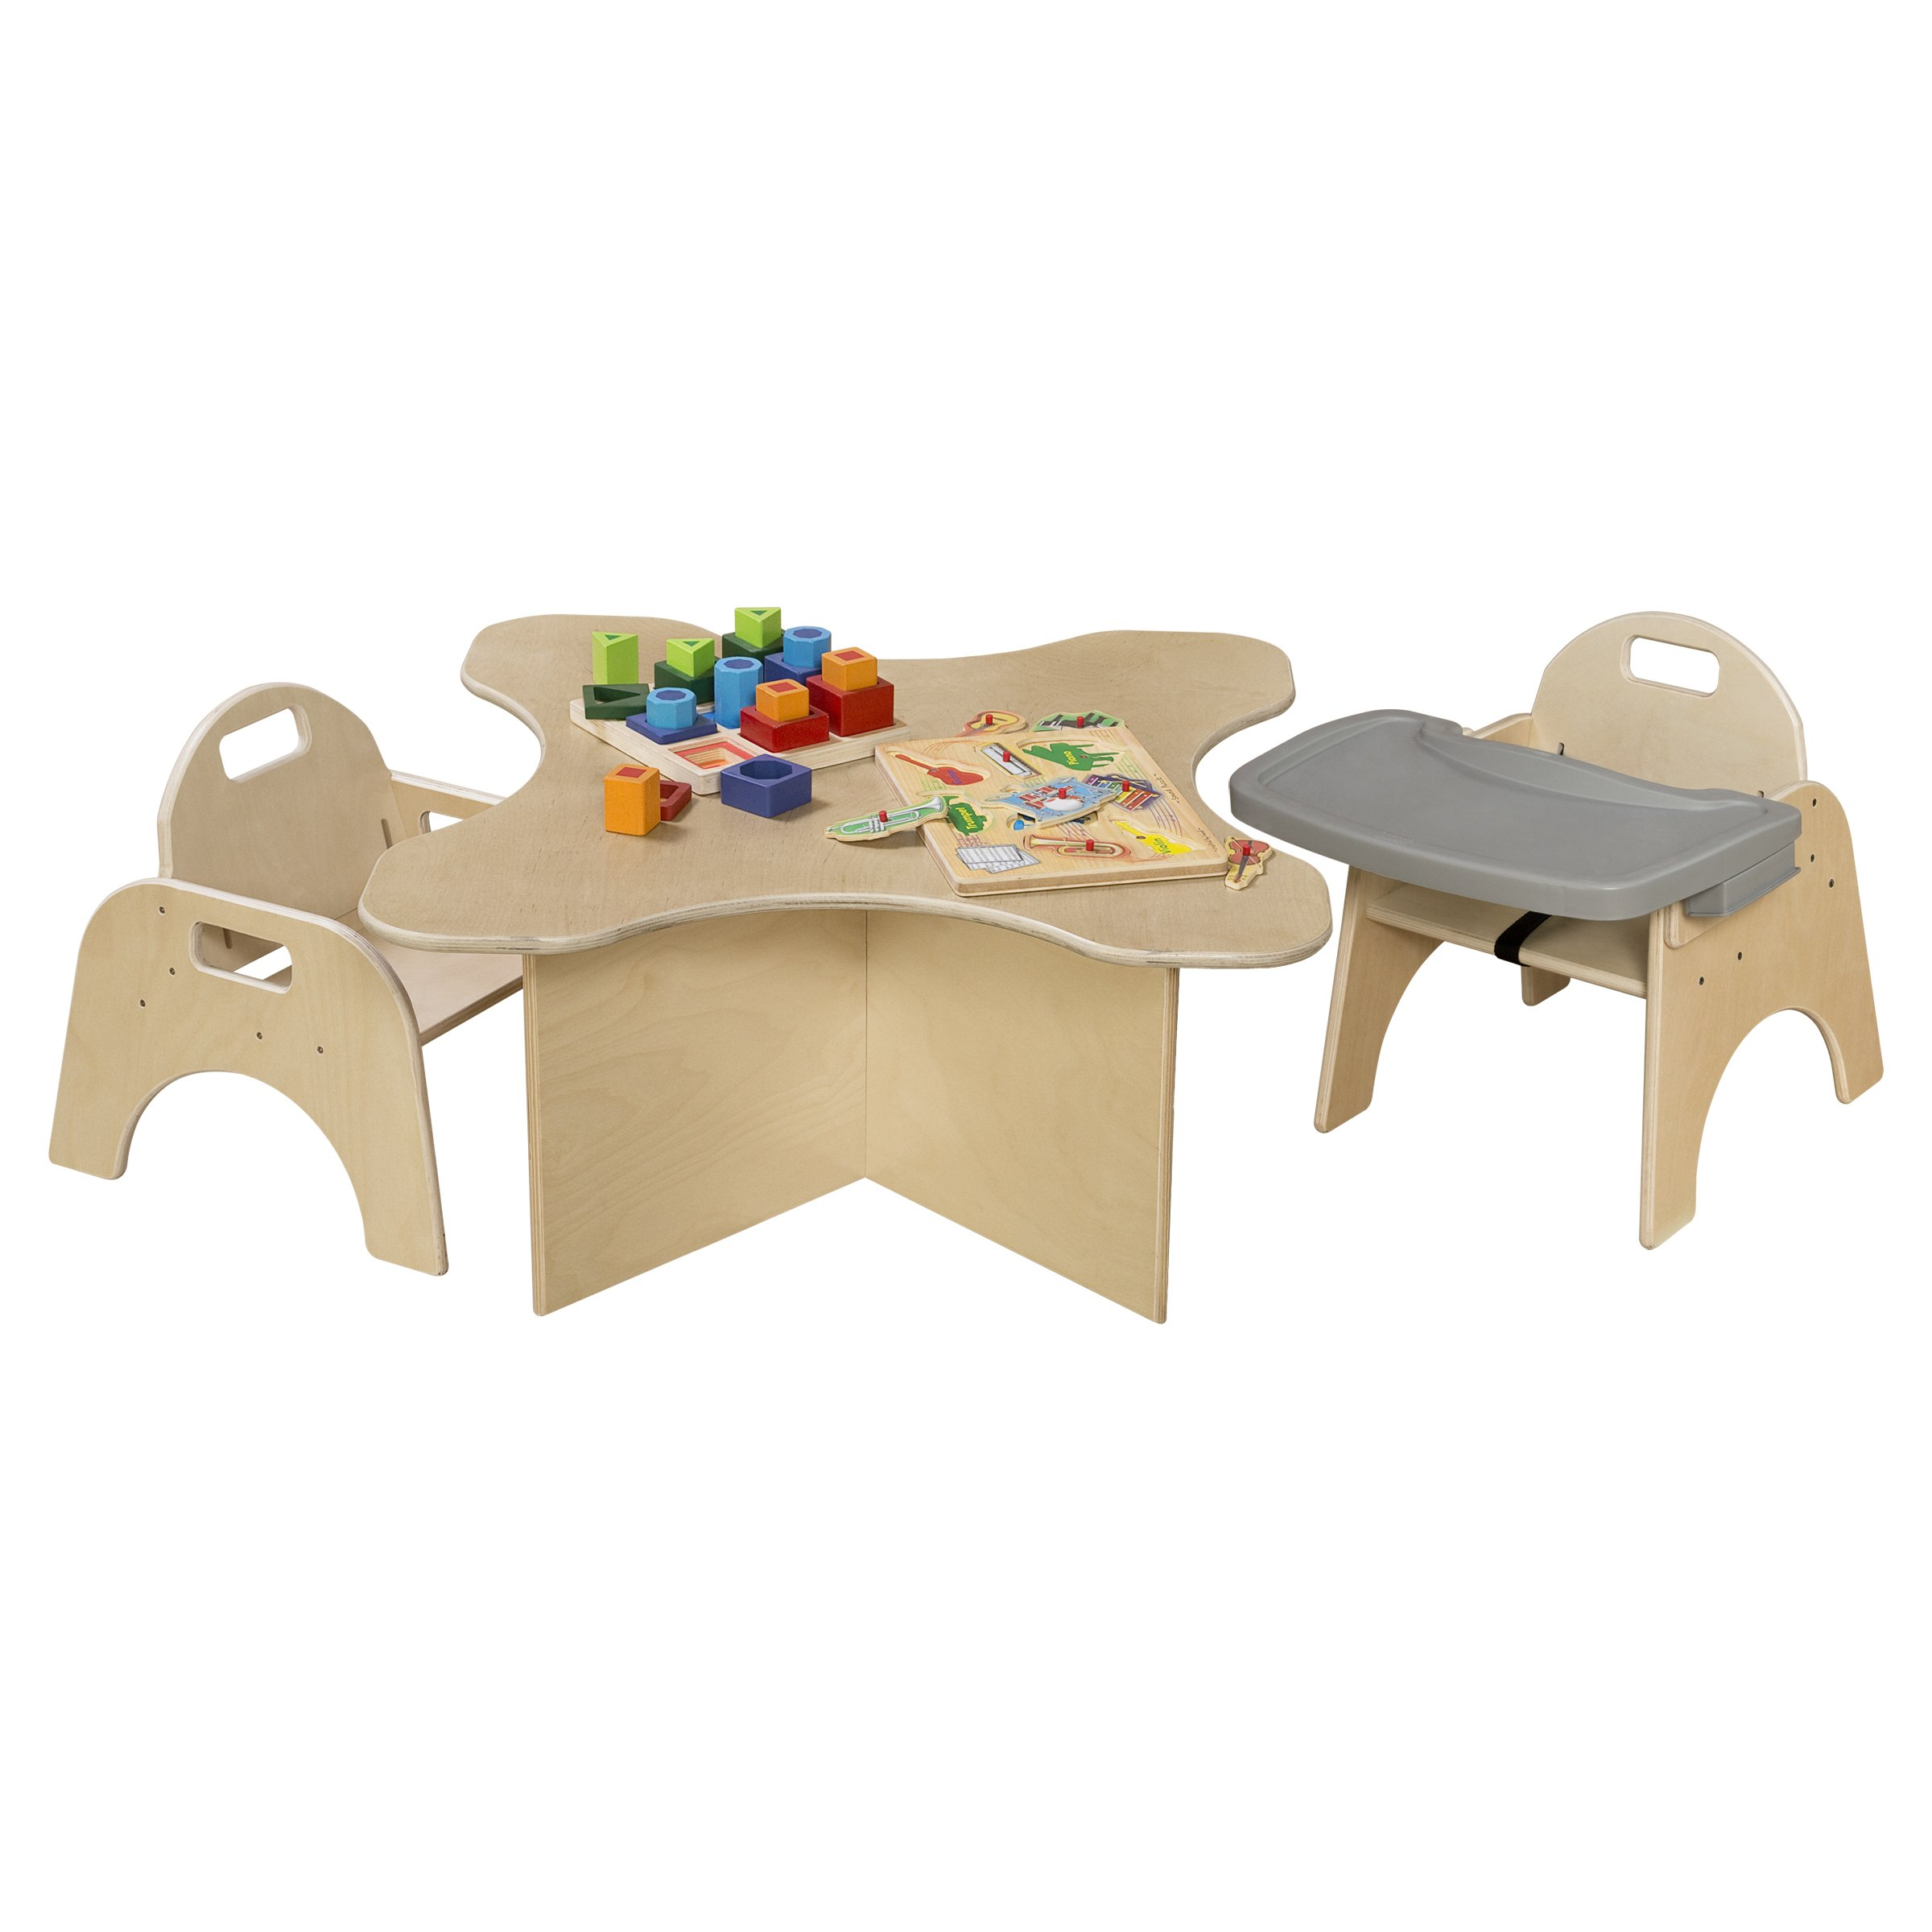 Wood Designs Stackable Woodie Kids Chair with Adjustable Tray, 13'' High Seat by Wood Designs (Image #2)